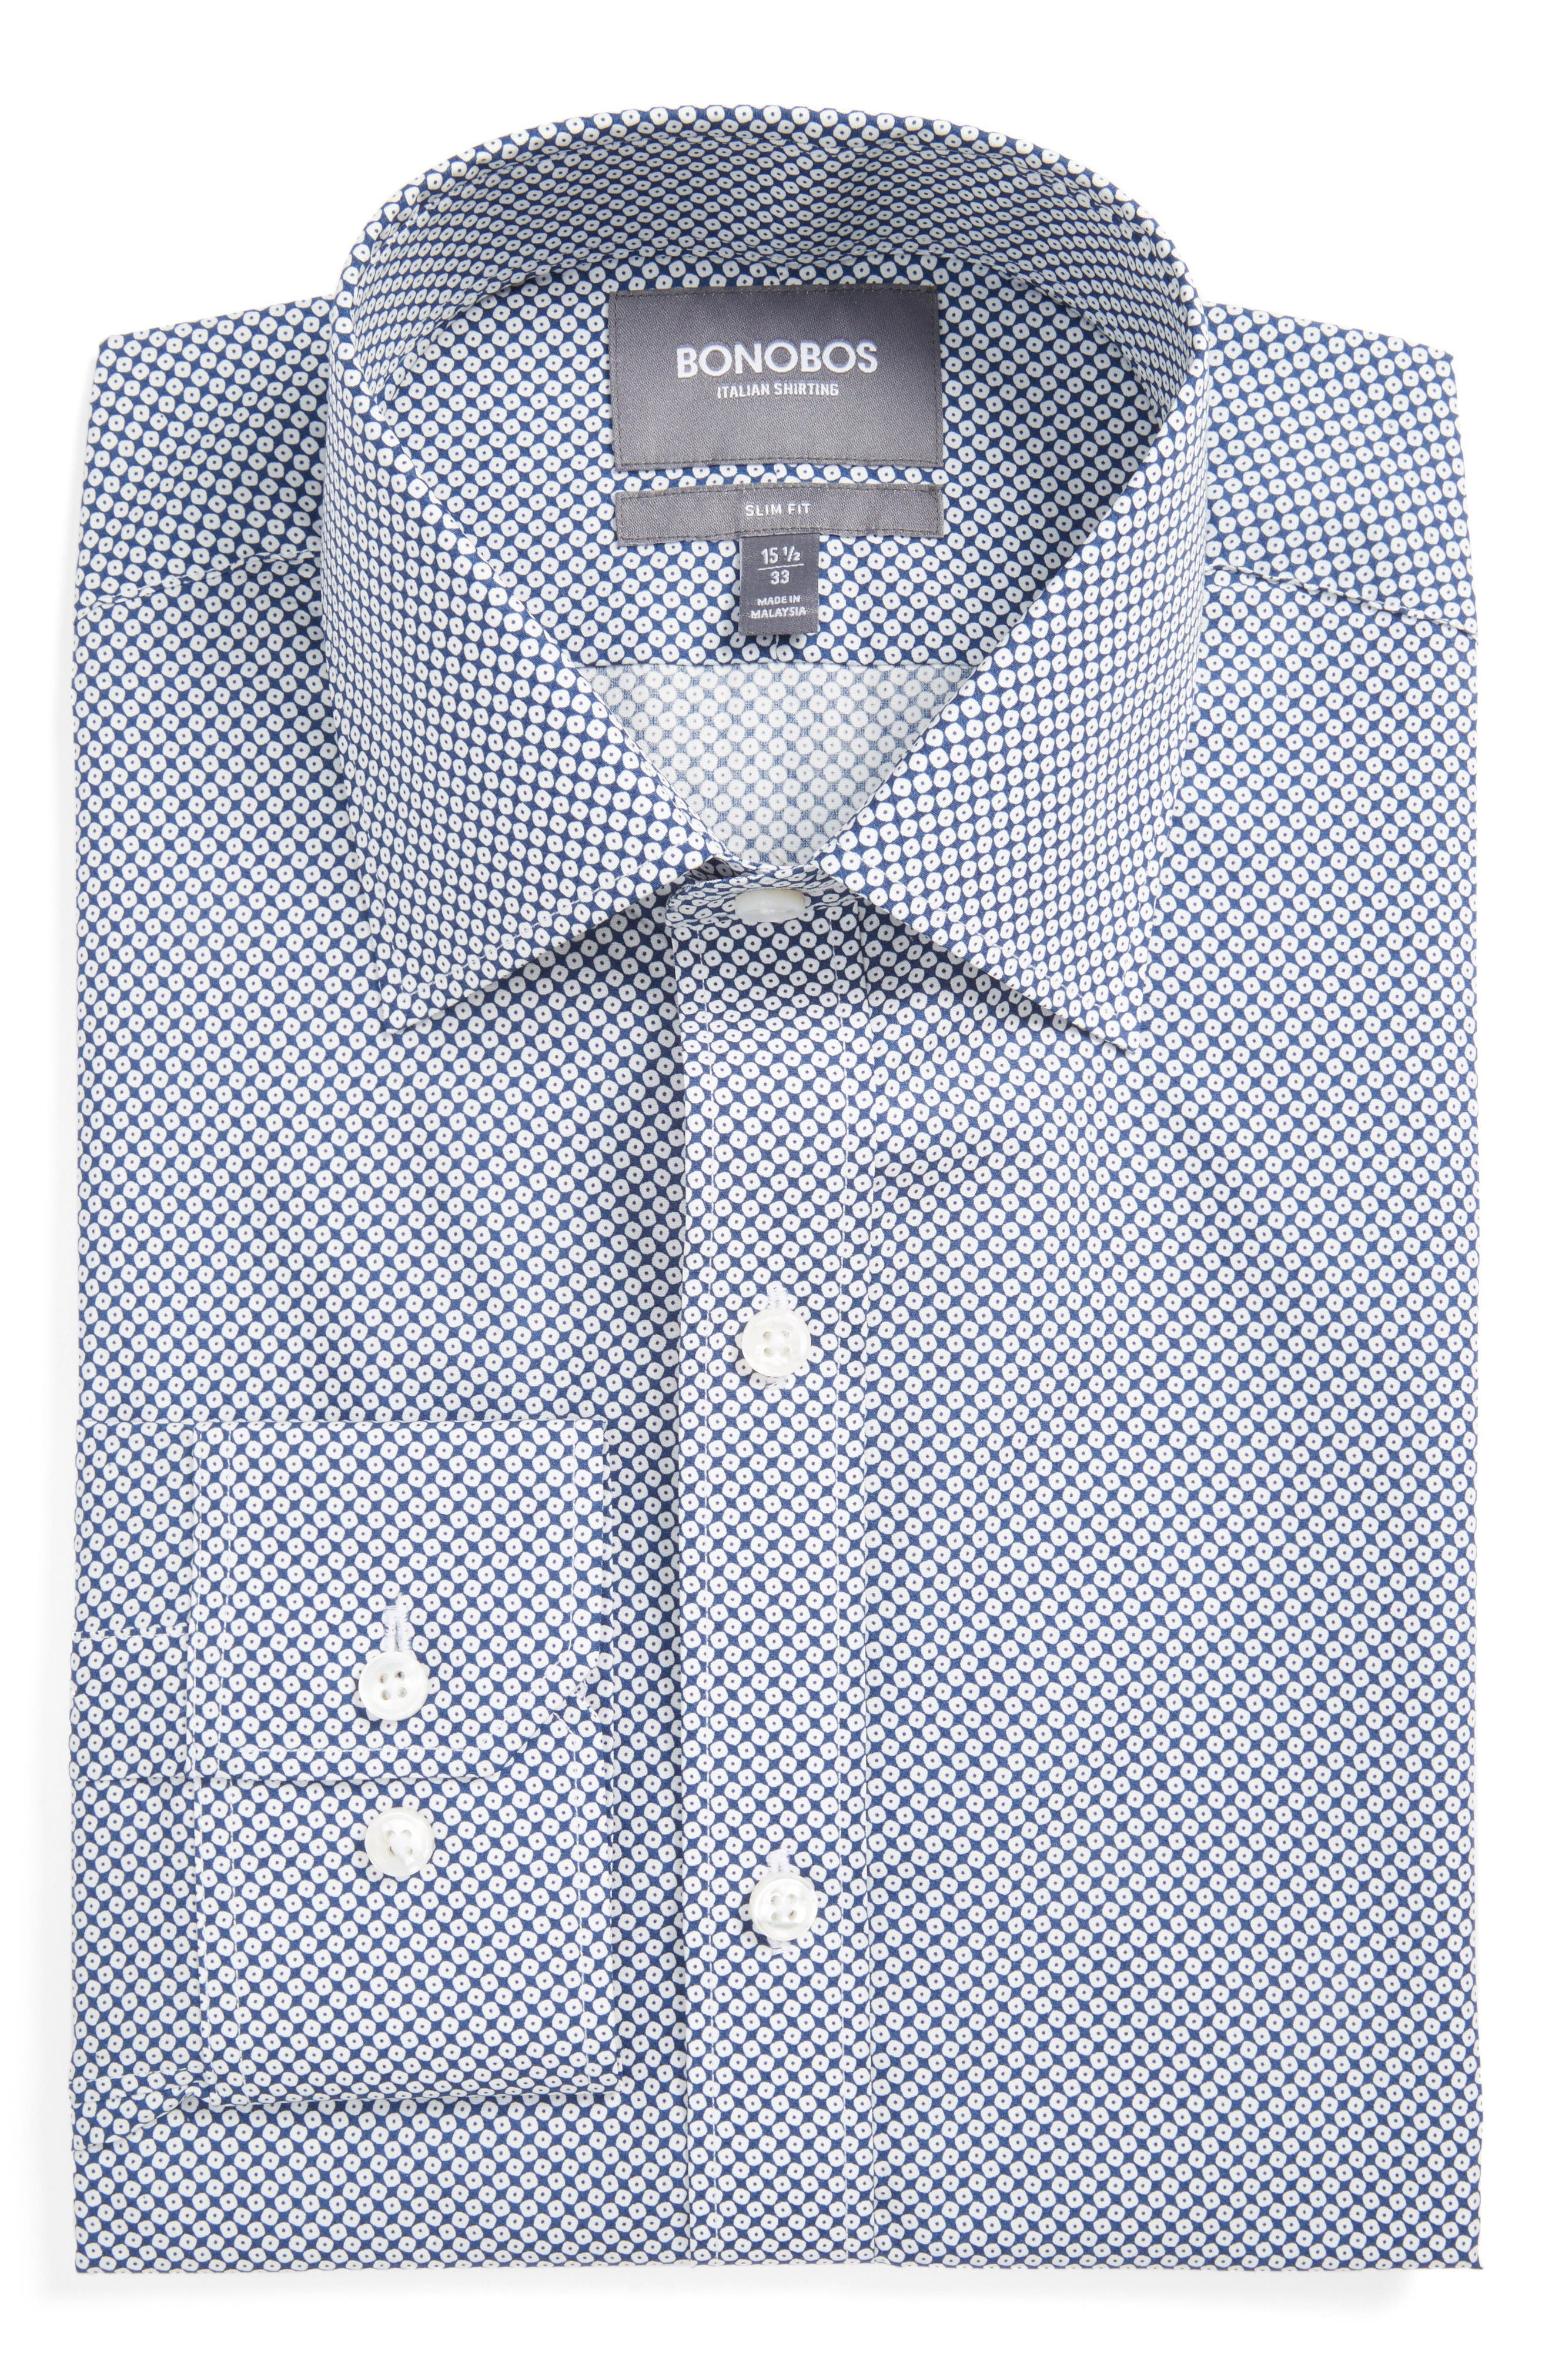 Main Image - Bonobos Americano Slim Fit Geometric Dress Shirt